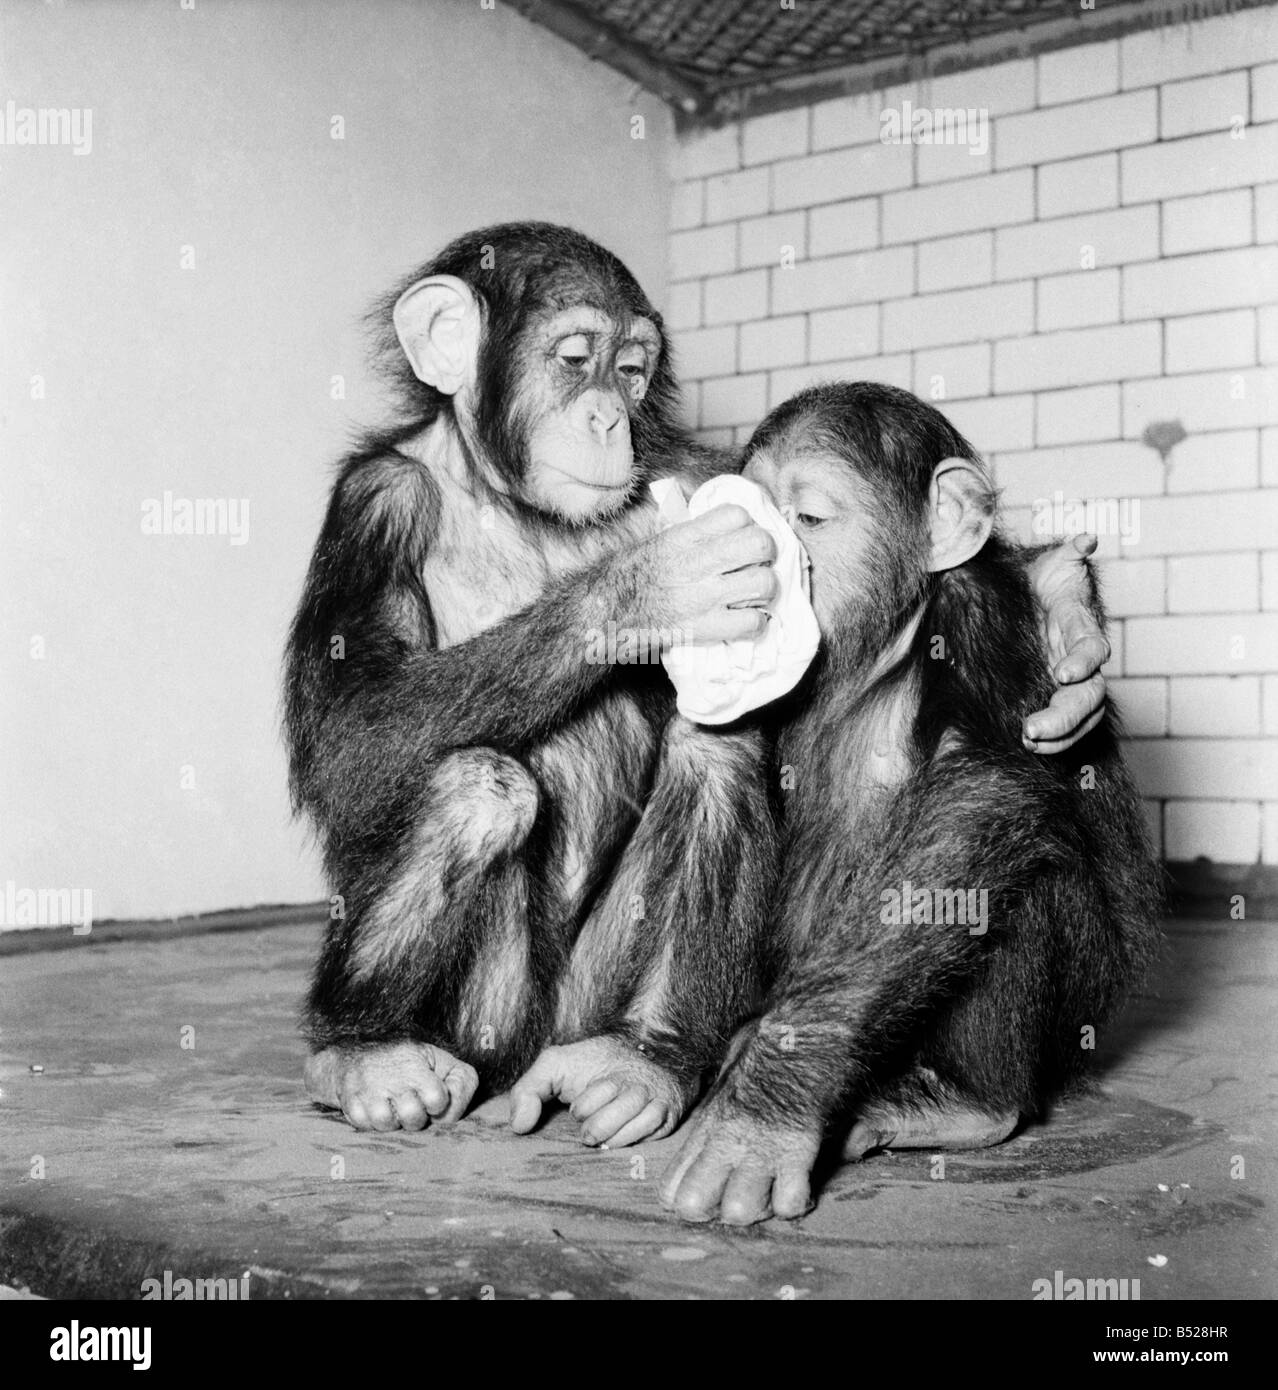 Chimpanzee pictures chimpanzees are all black but - Chimpanzees Tea Party Is Cancelled As The Monkeys All Hance Colds Our